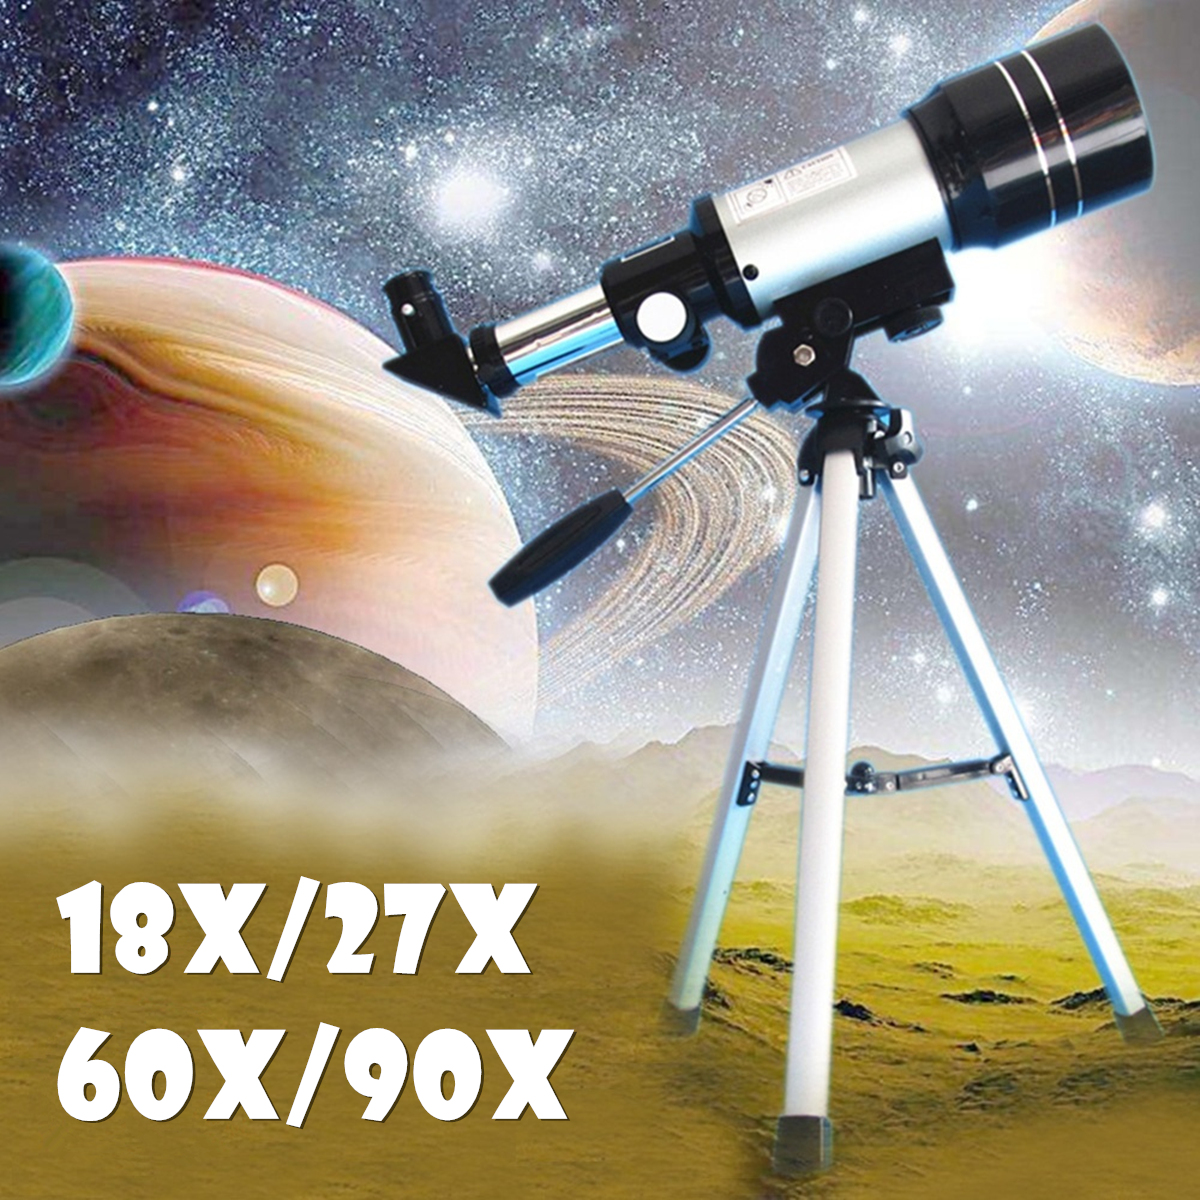 SGODDE F360/50mm Refractive Astronomical Telescope Monocular Space Outdoor Travel Spotting Telescope Photography 90x zonebike zoom hd 90x outdoor space astronomical telescope monocular with tripod 360 50mm telescopic spotting scope for children